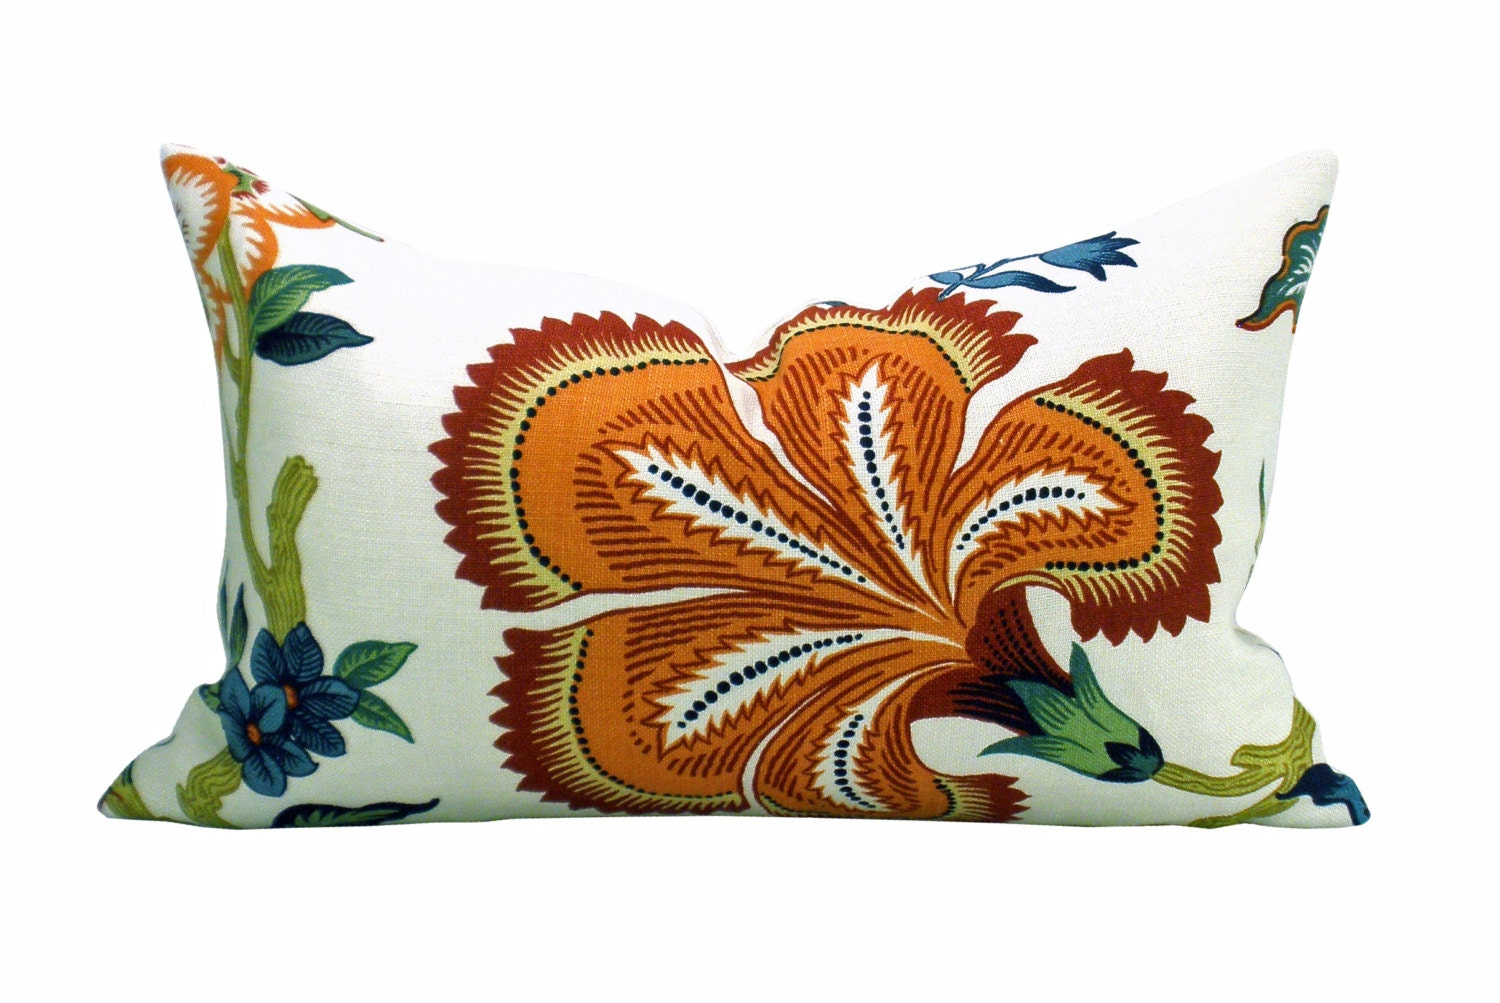 Hothouse Flowers lumbar pillow cover in Spark